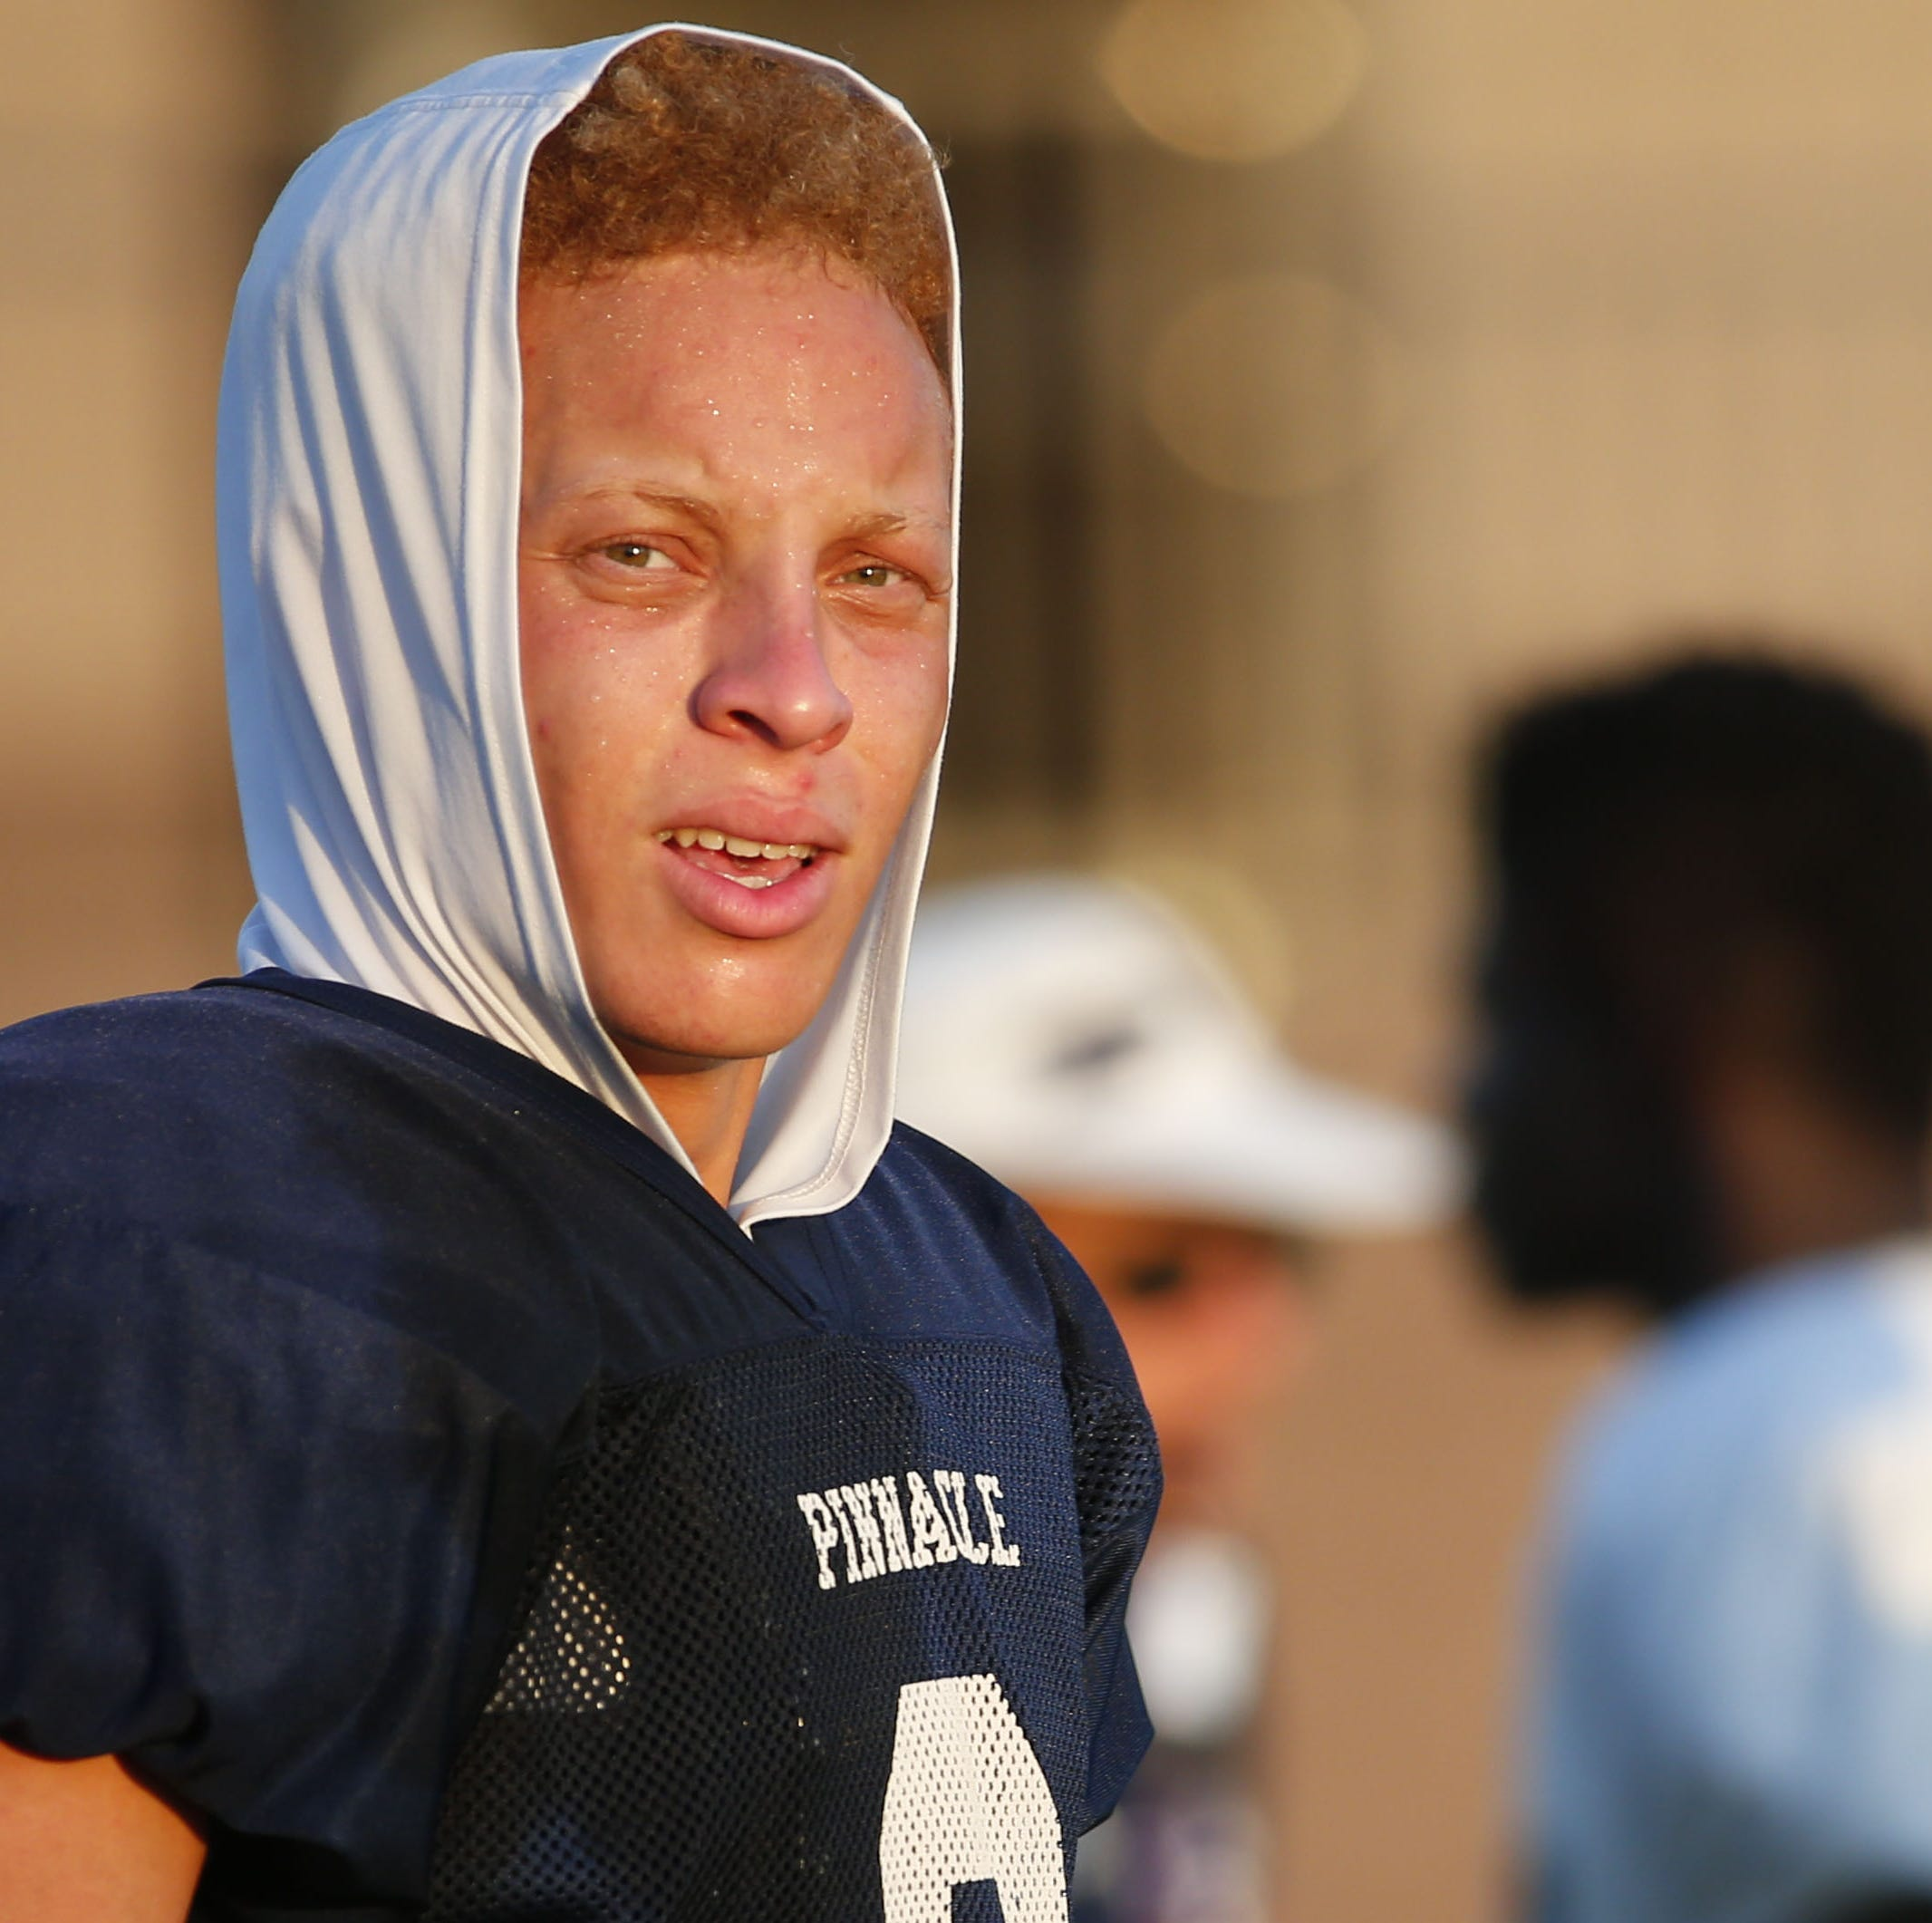 Oklahoma-bound QB Spencer Rattler on Jalen Hurts' transfer from Alabama: 'I love it'